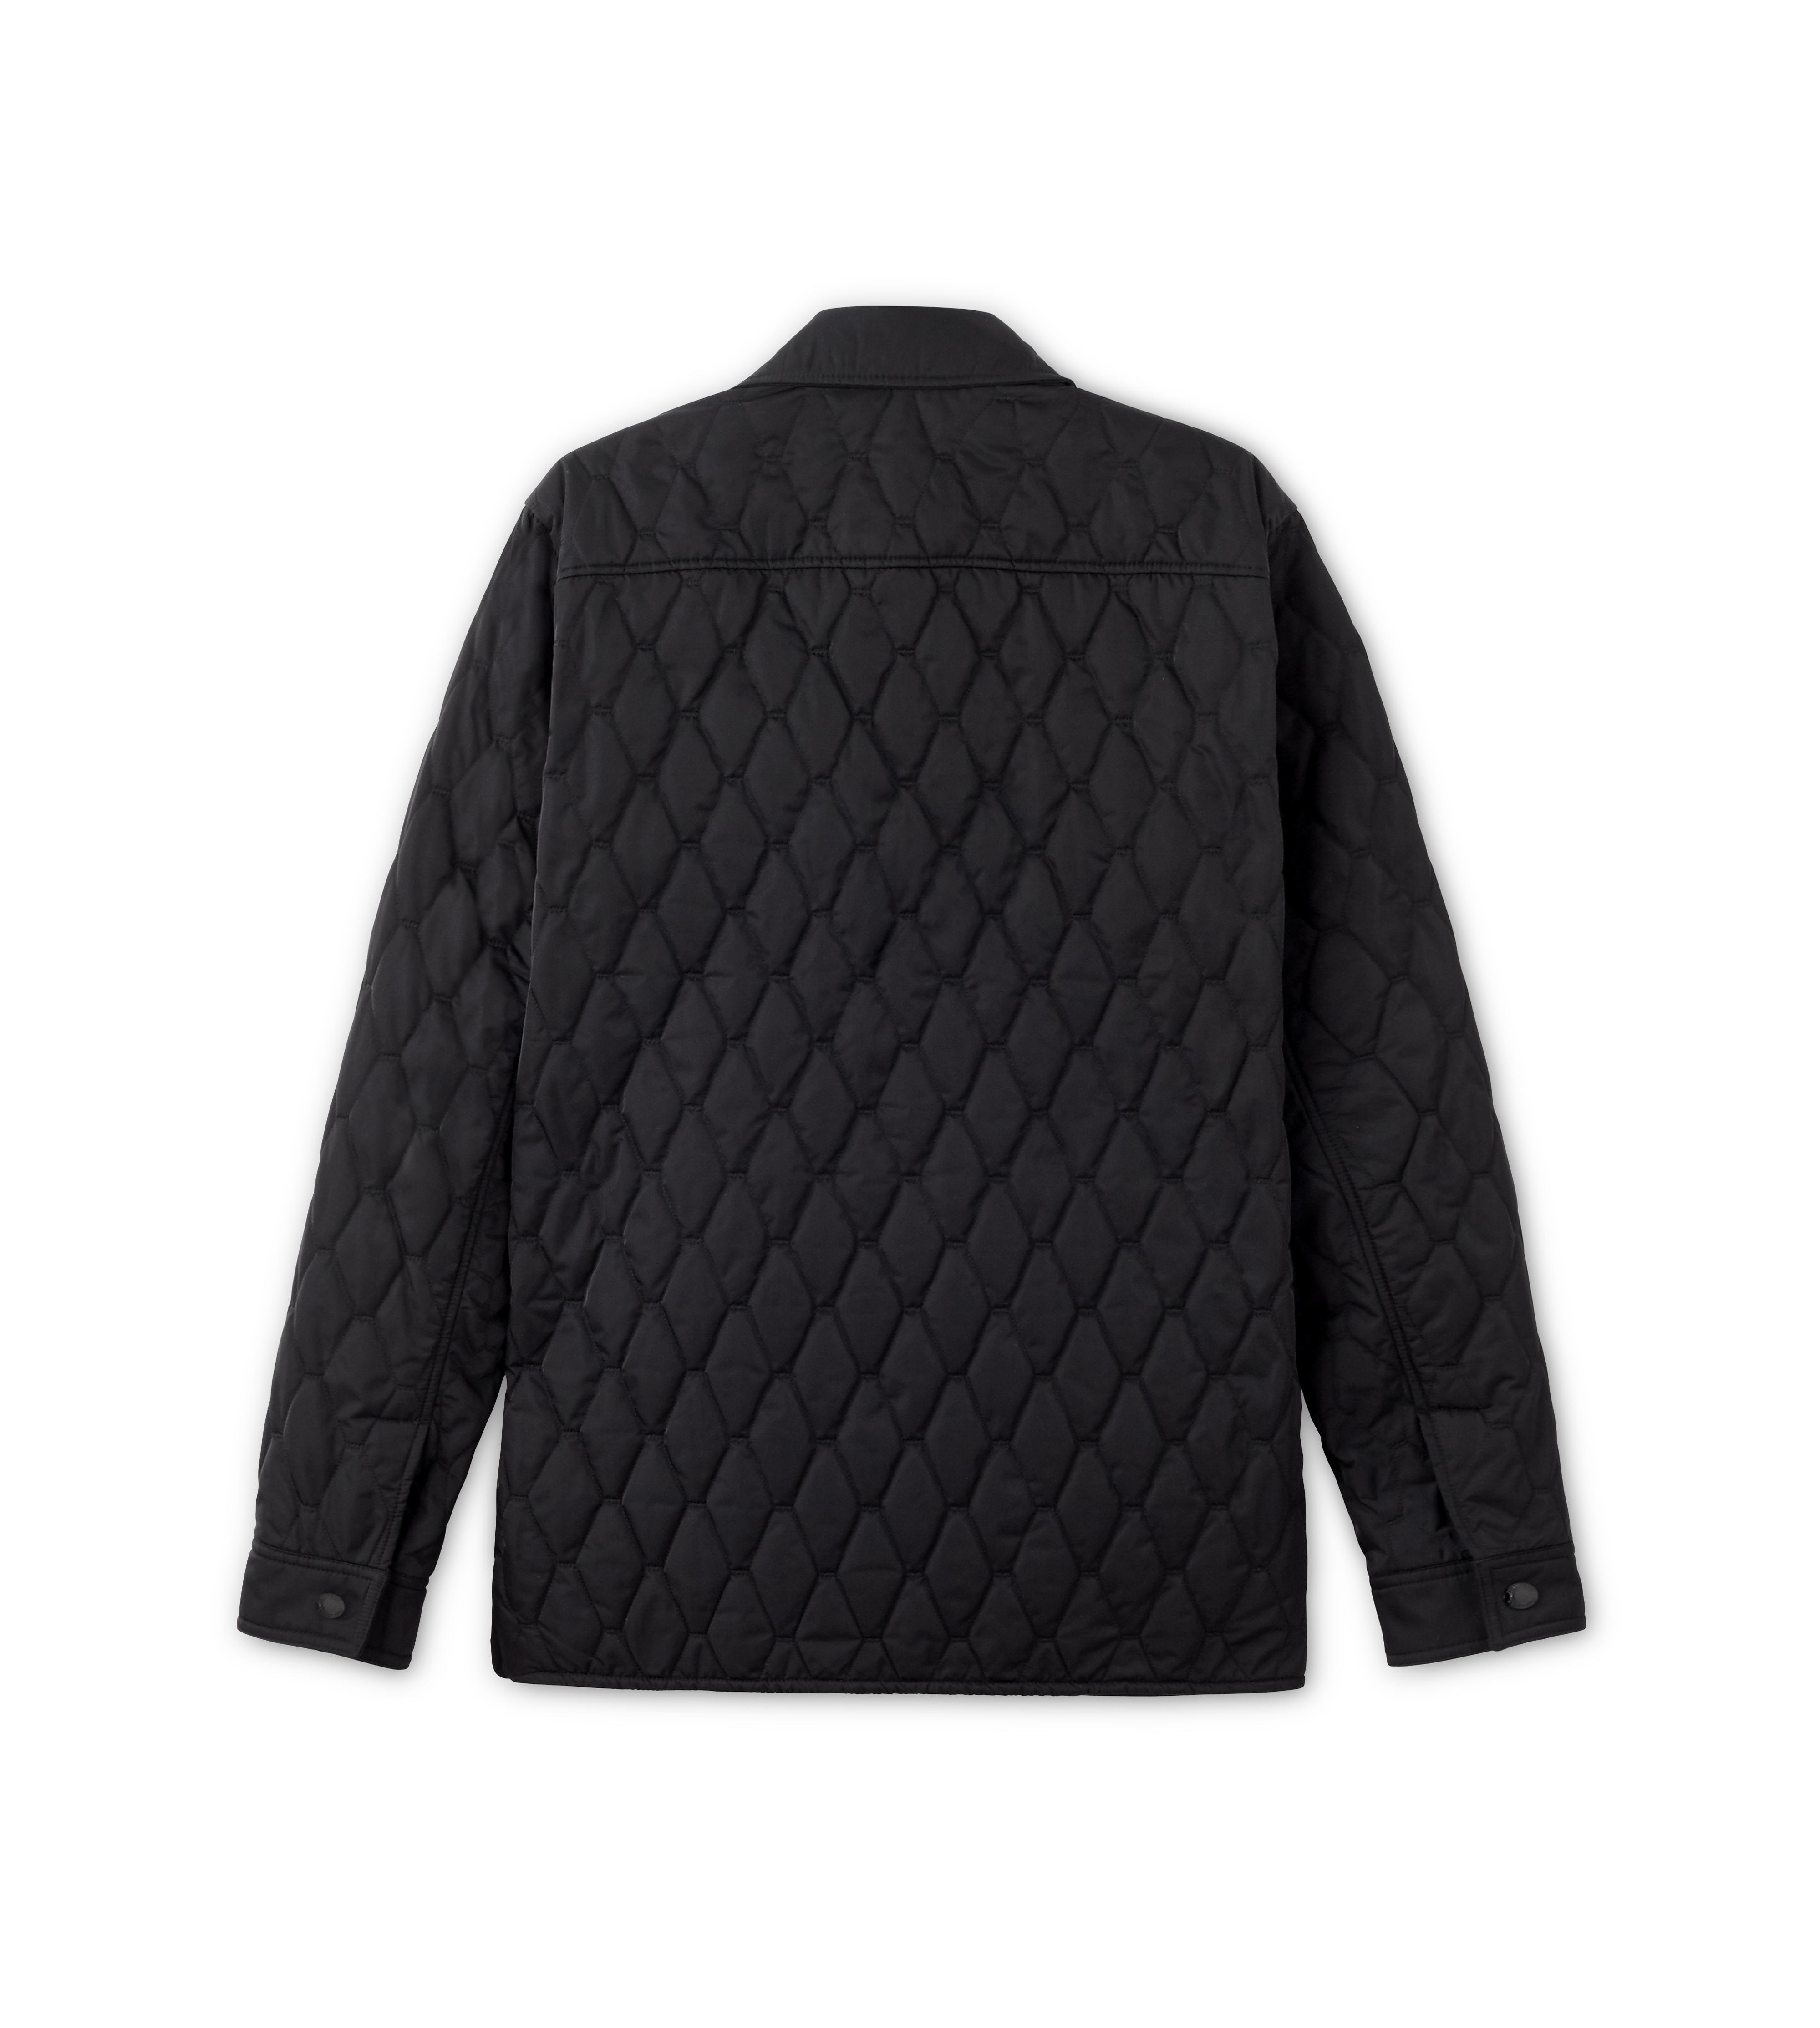 NYLON TWILL DIAMOND QUILTED OUTER SHIRT B thumbnail